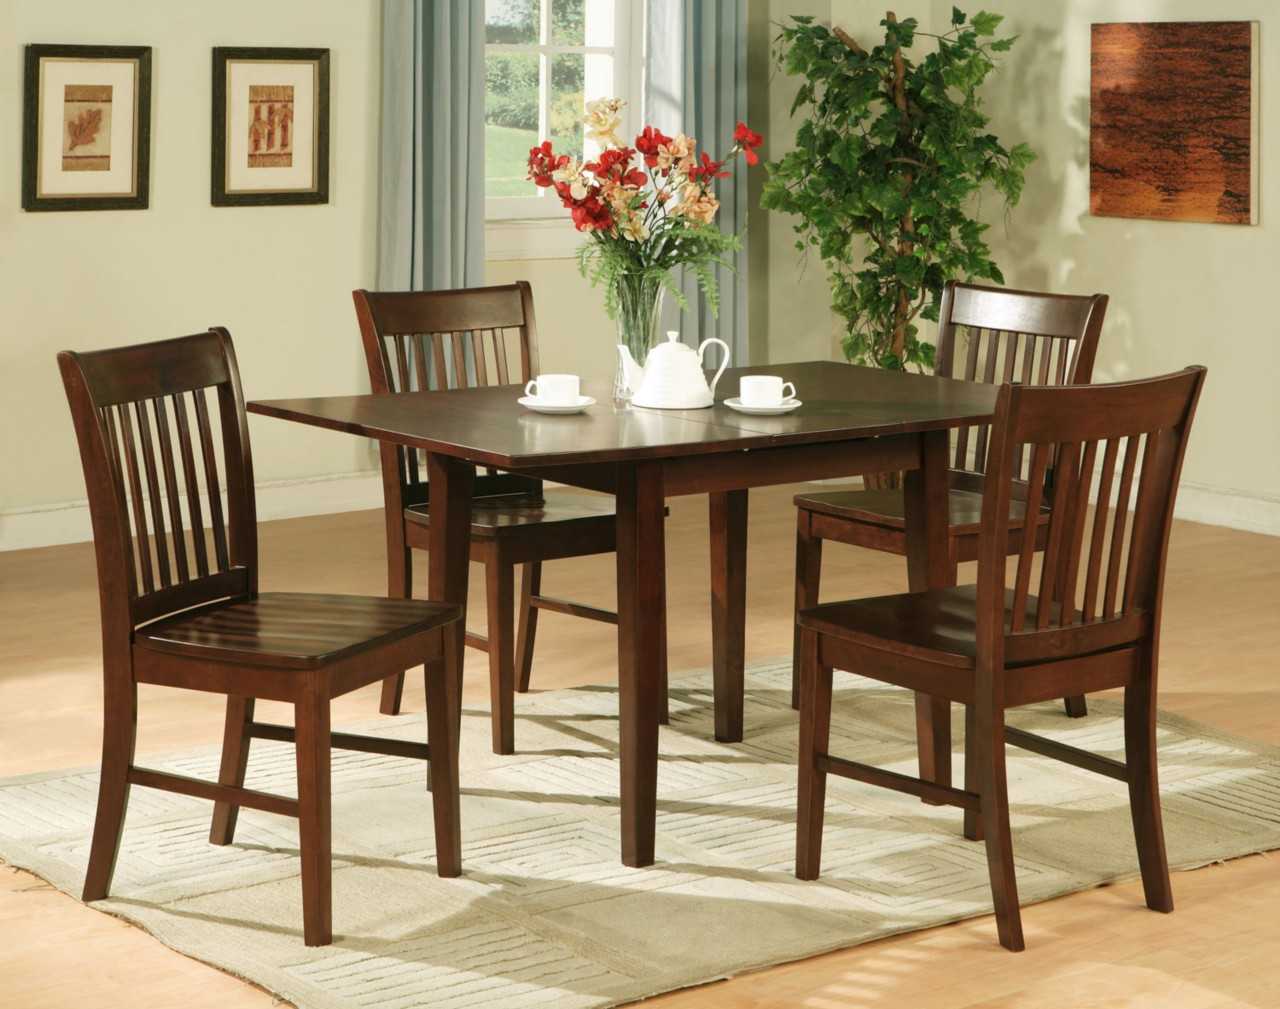 5pc rectangular kitchen dinette table 4 chairs mahogany ebay for Dinette furniture